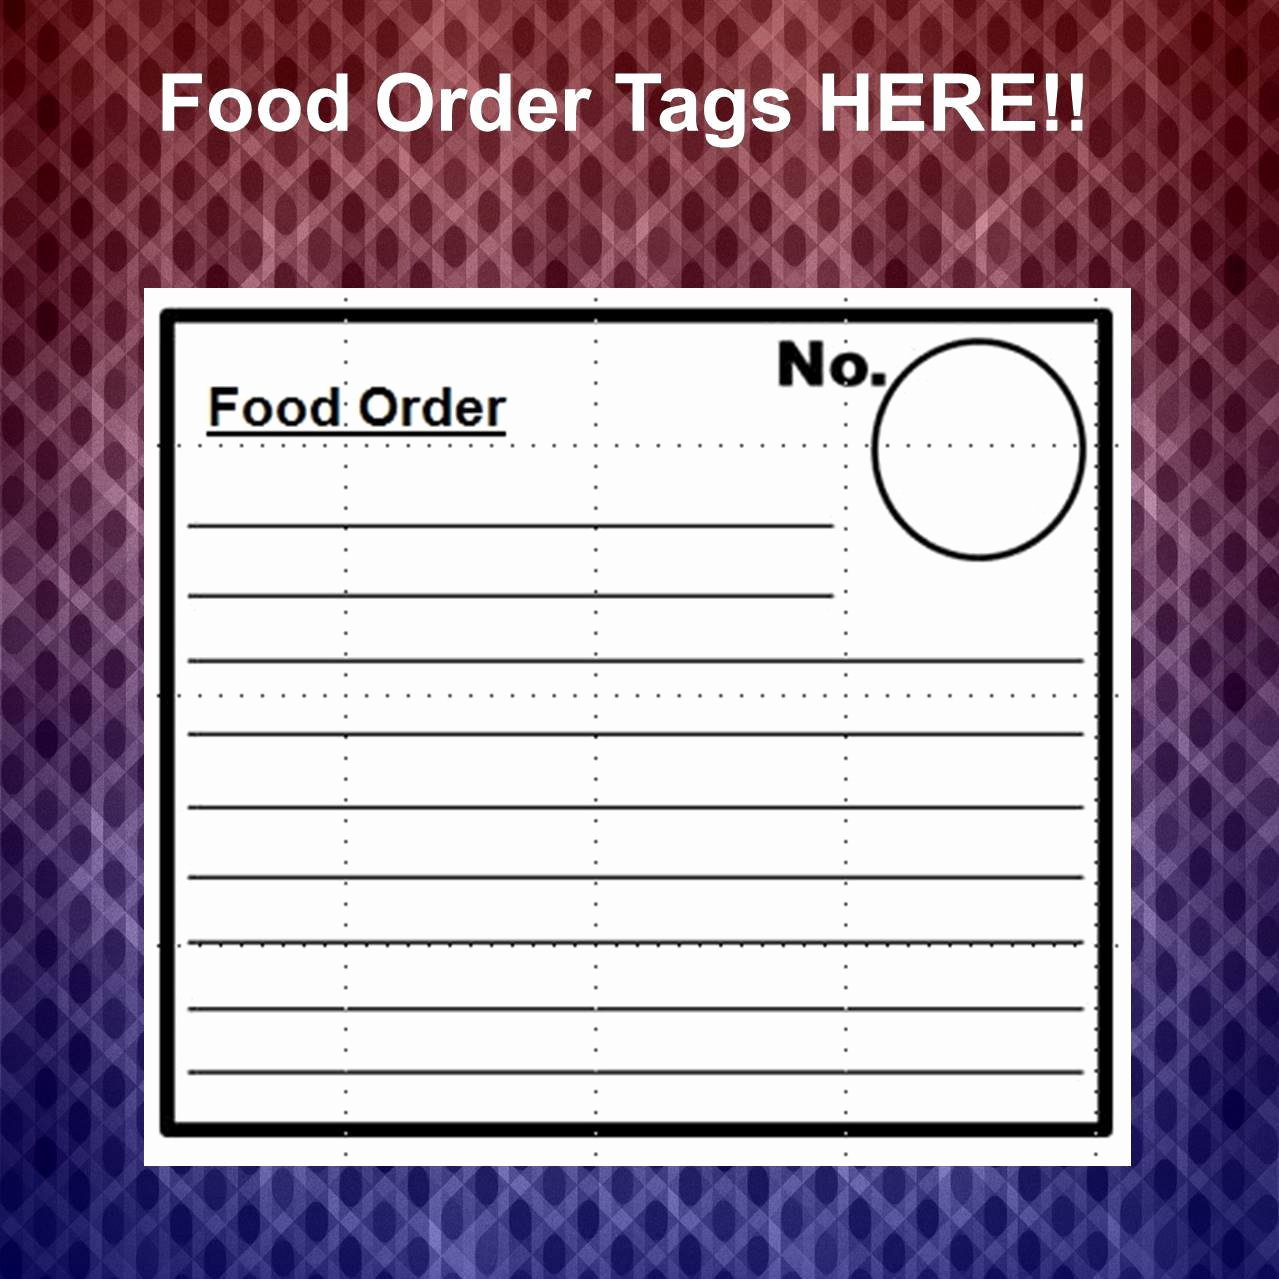 Food order form Template Awesome Food order Docket form Template